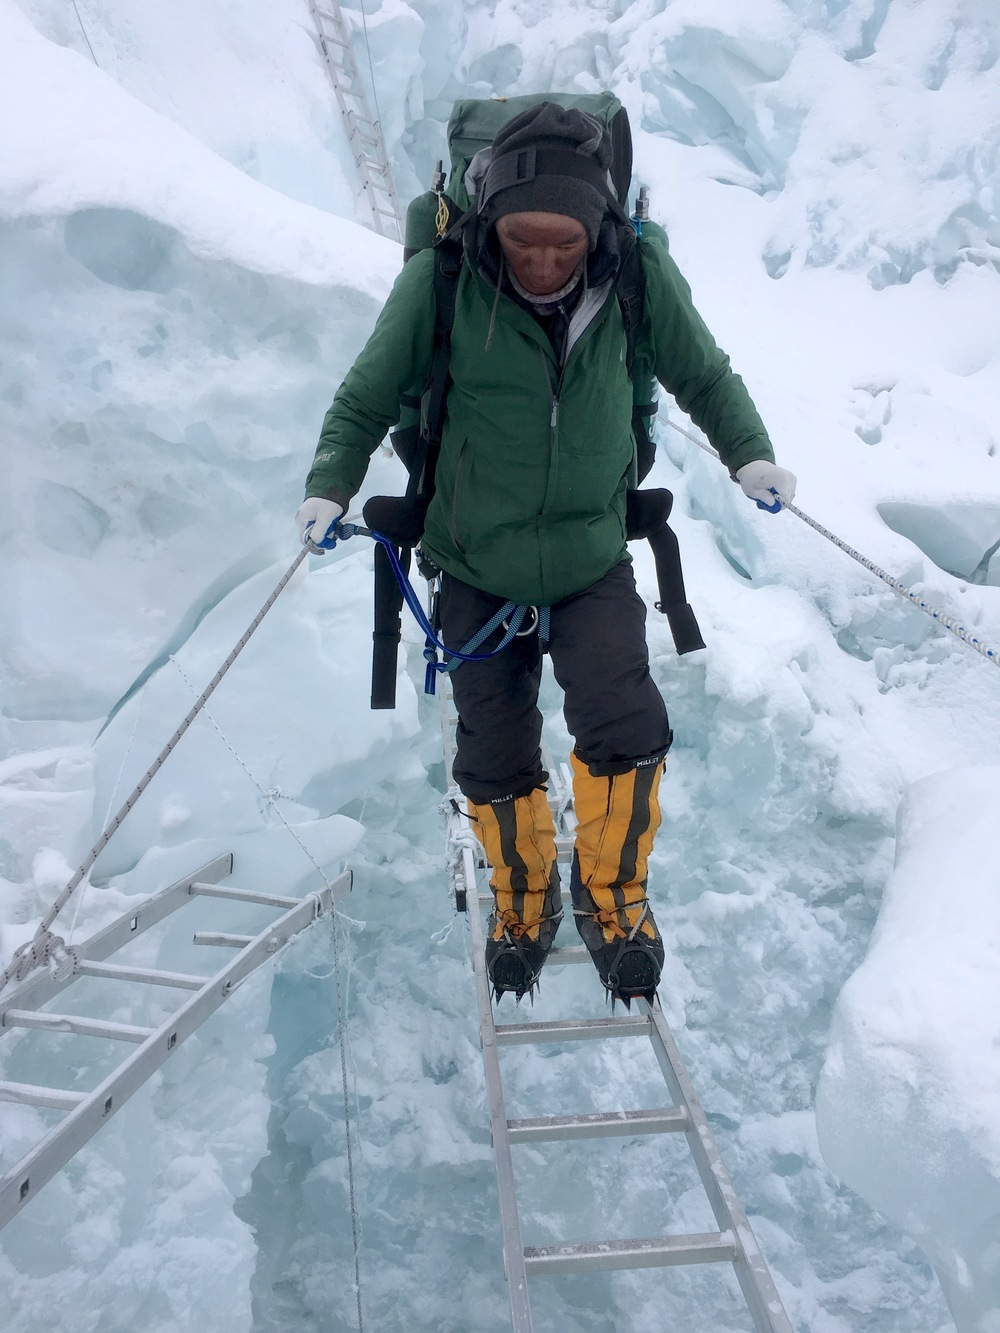 Pa Rita Sherpa descending on the Khumbu Ice Fall